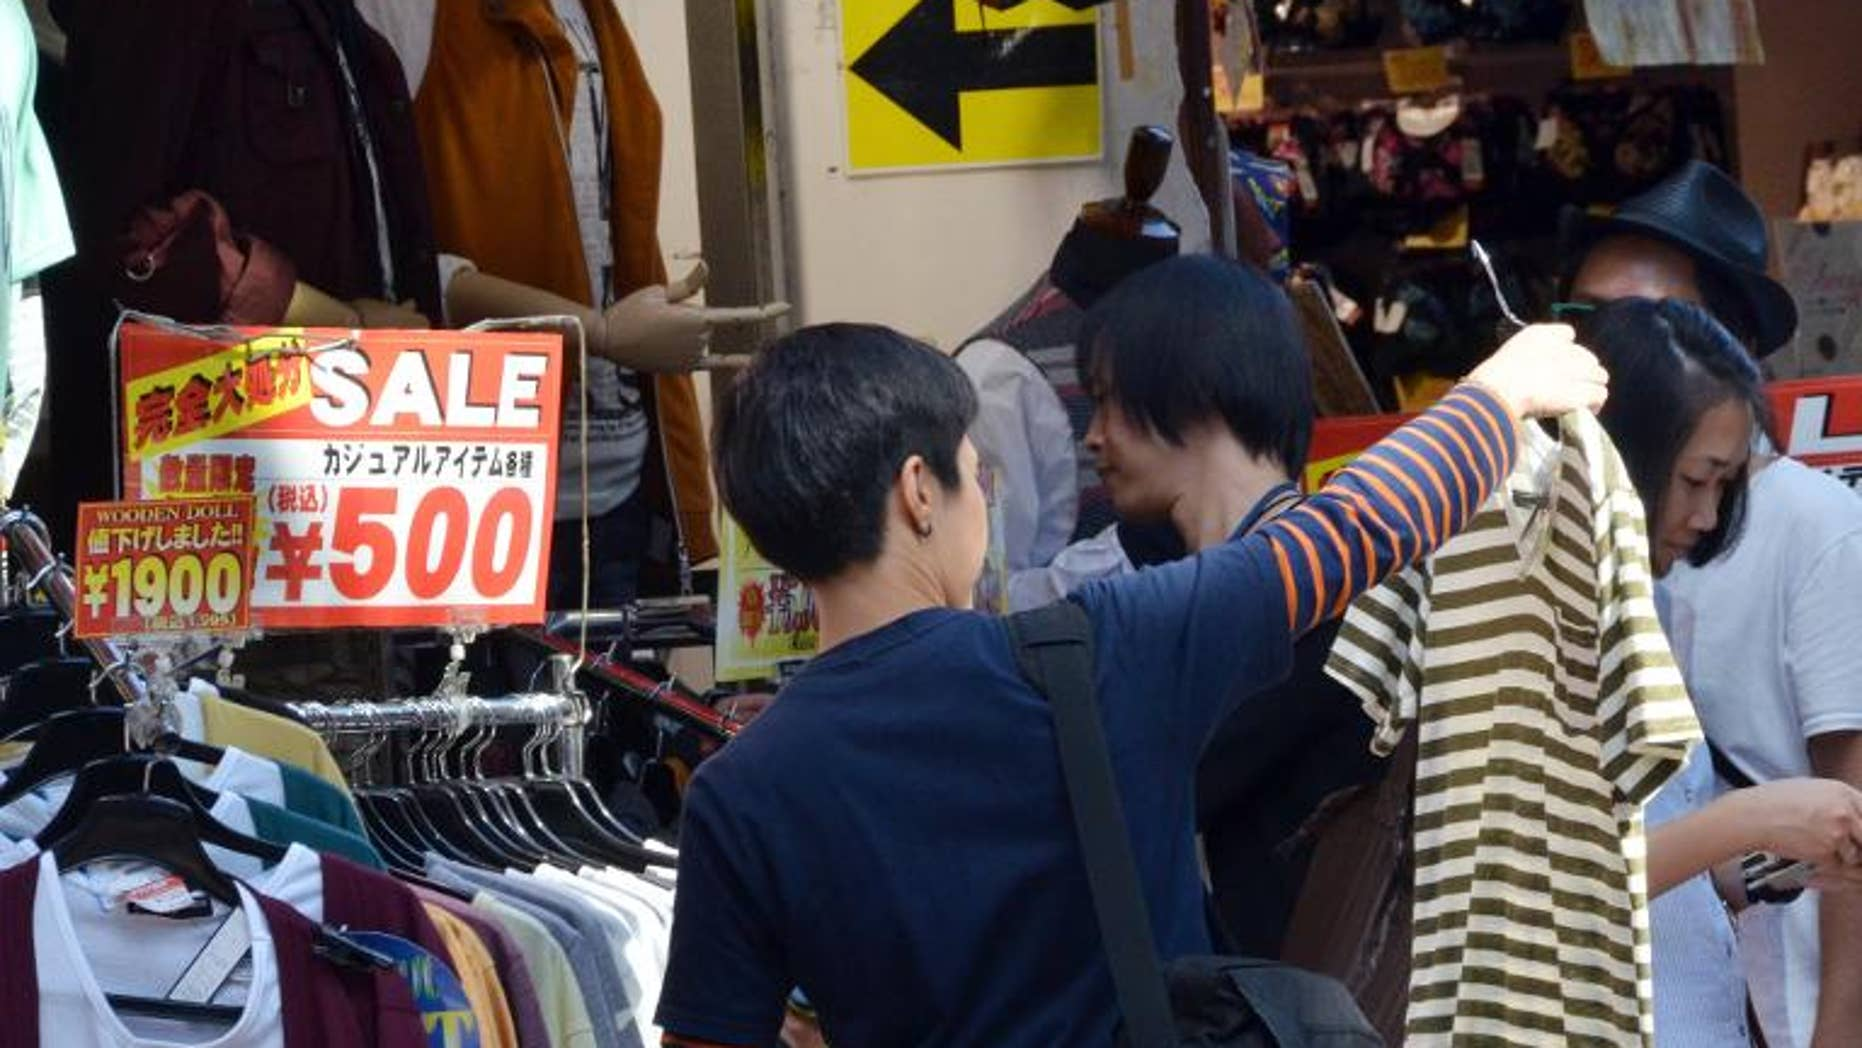 Shoppers look at clothing on sale outside a shop in Tokyo's Harajuku district, September 27, 2013